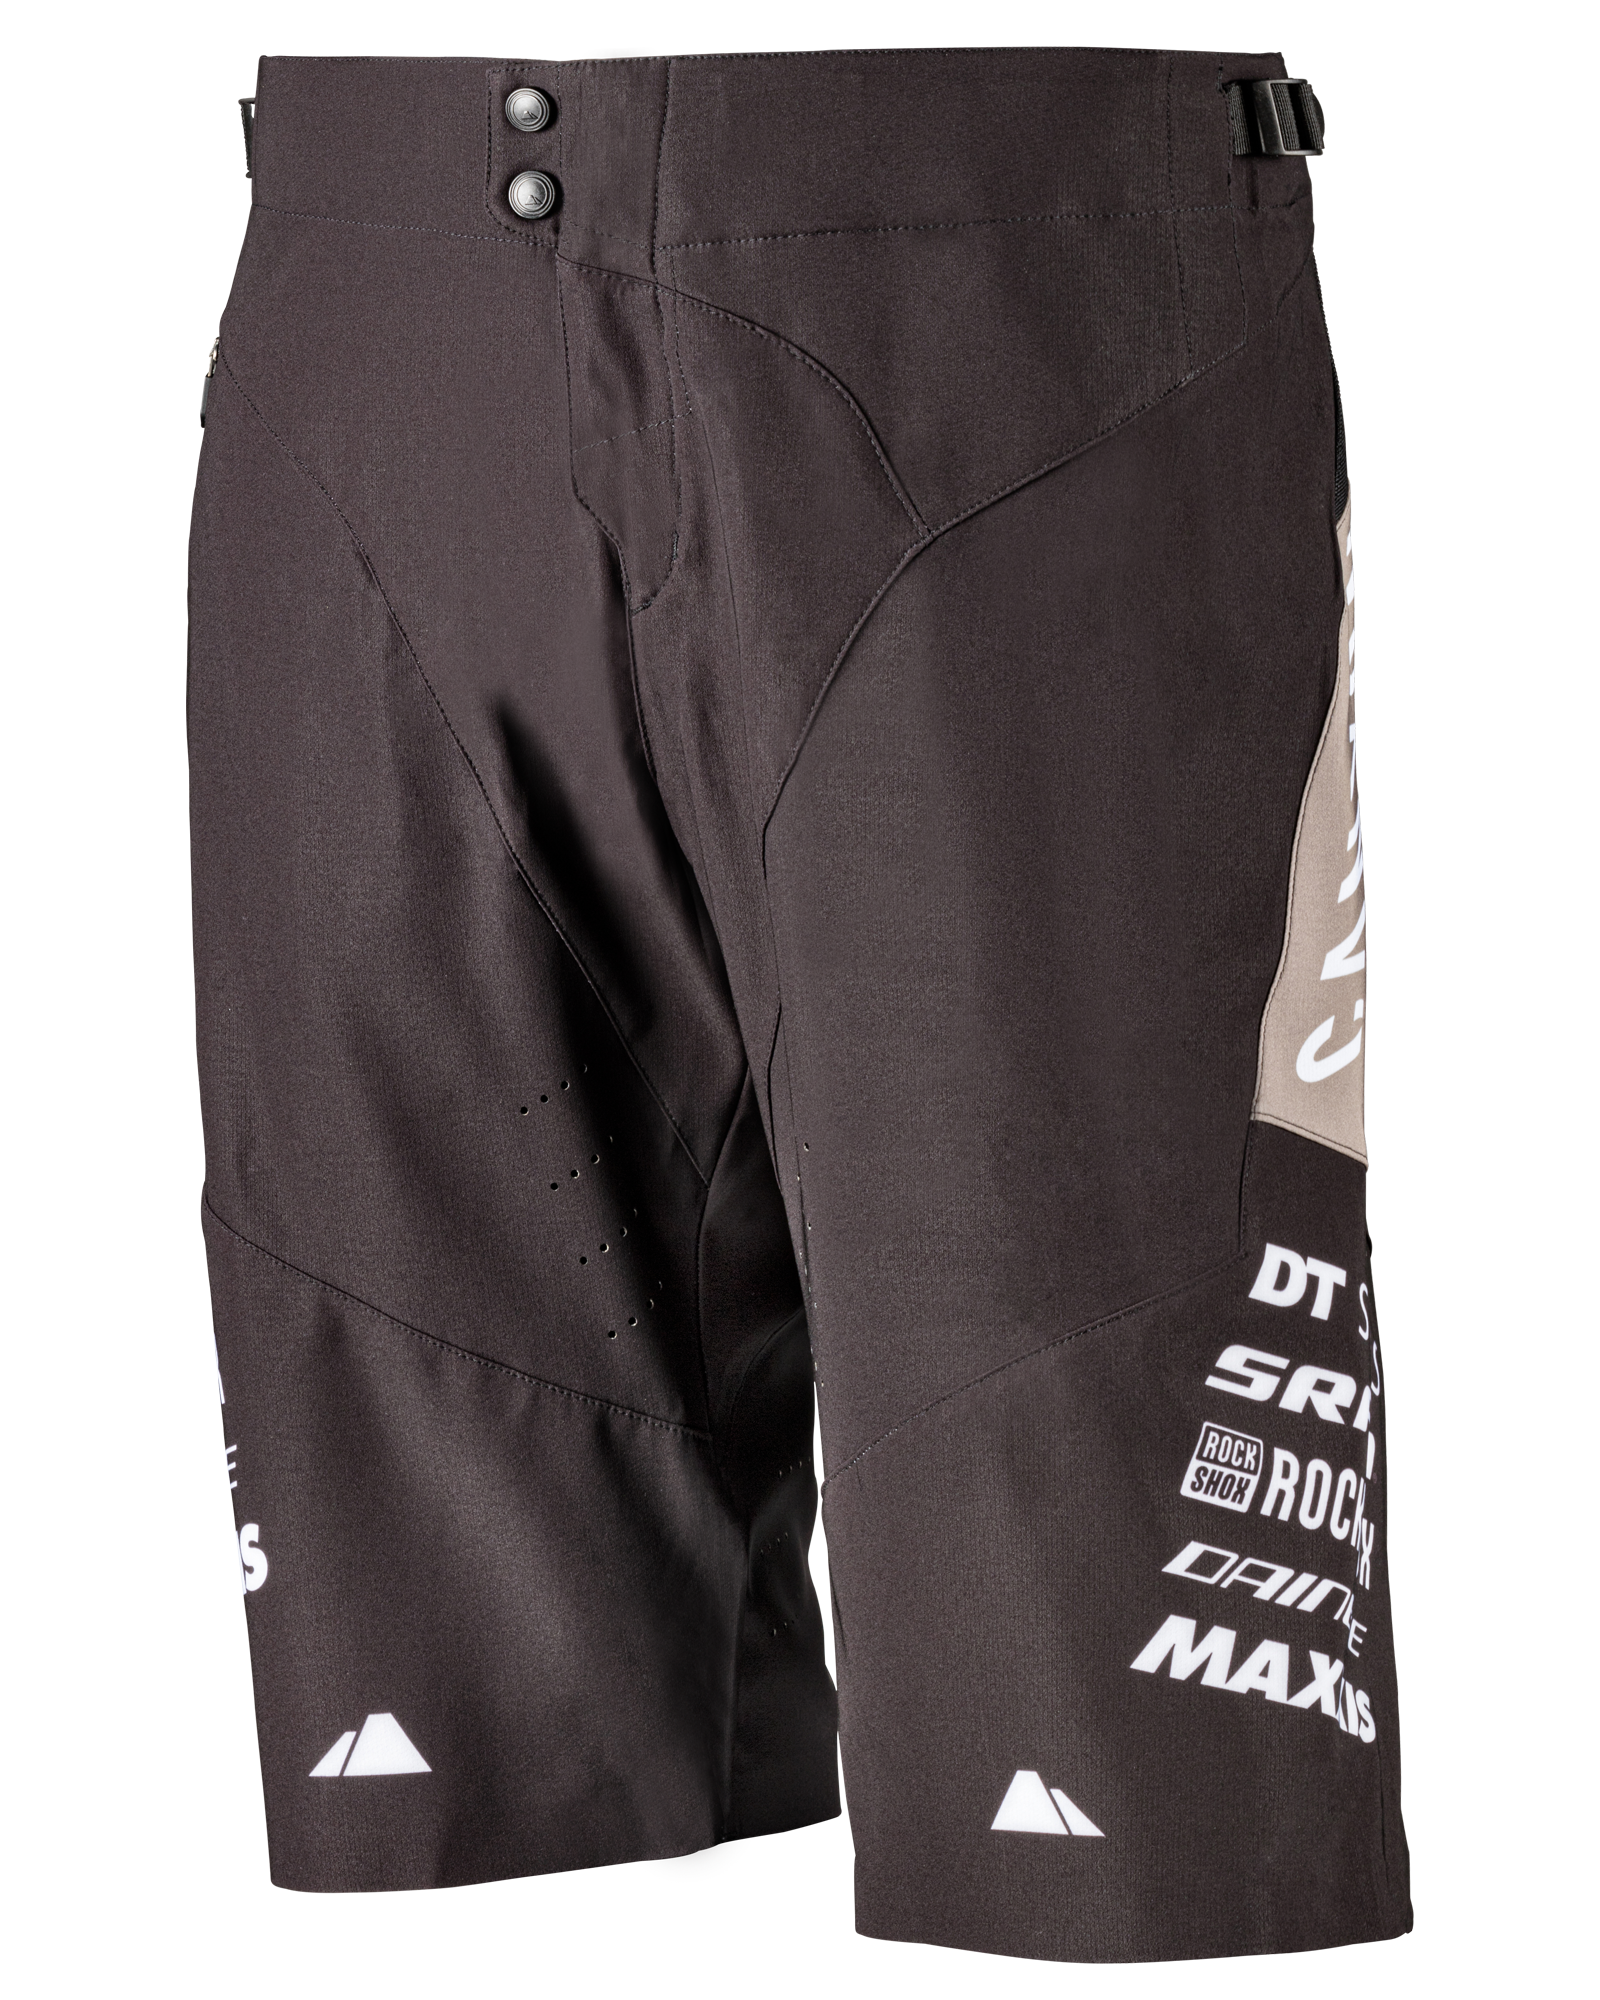 Canyon CFR MTB-Shorts | Bukser